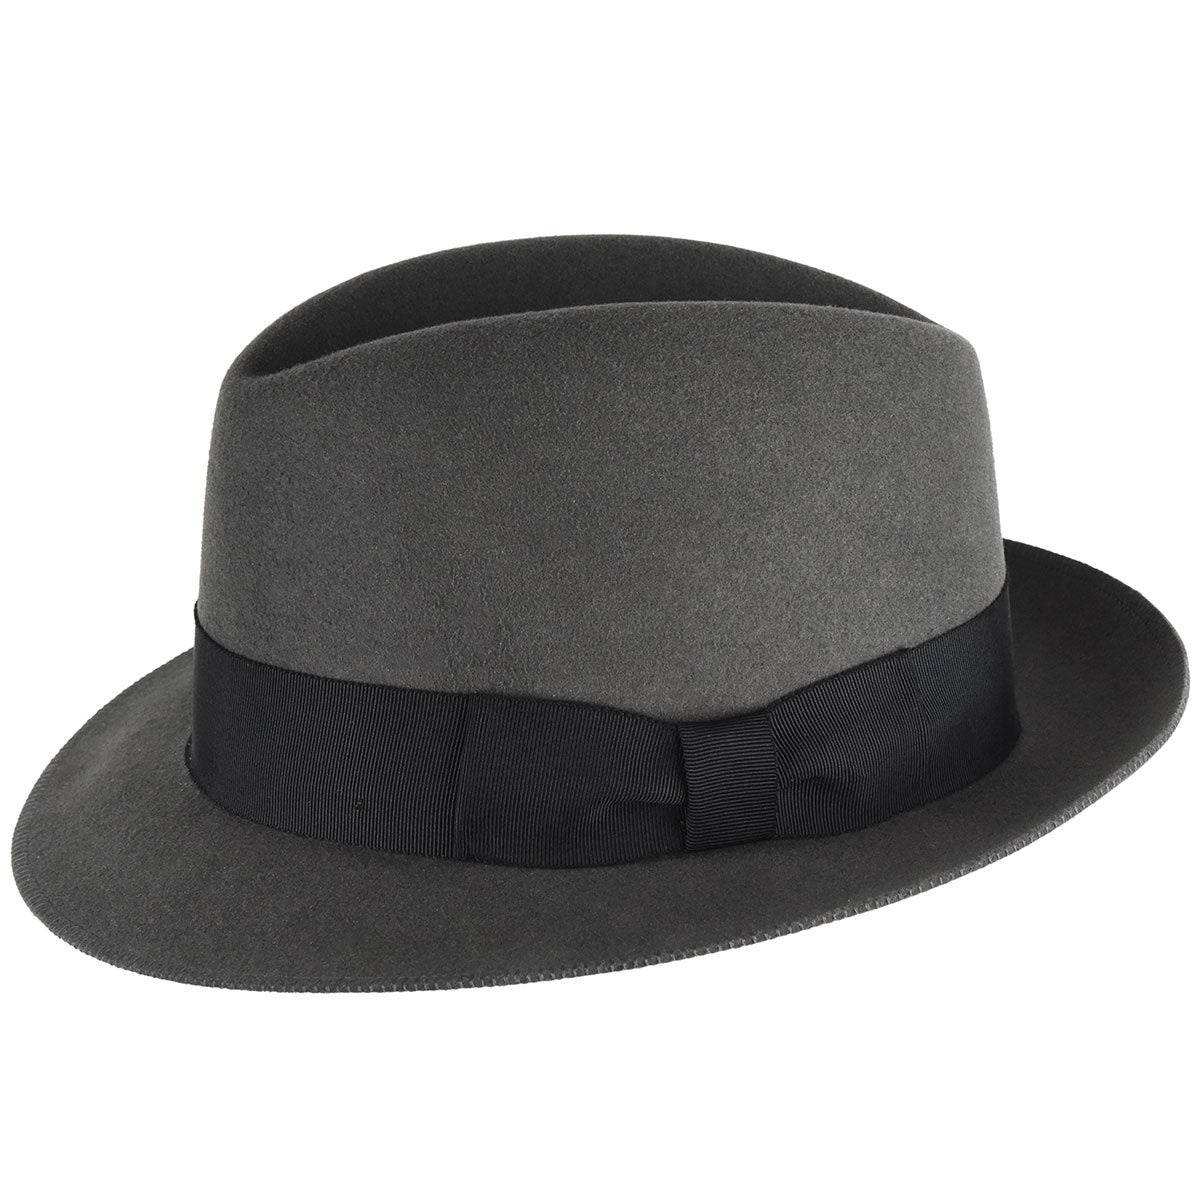 1930s Style Mens Hats and Caps 1930s Bollman Collection Trilby $100.00 AT vintagedancer.com